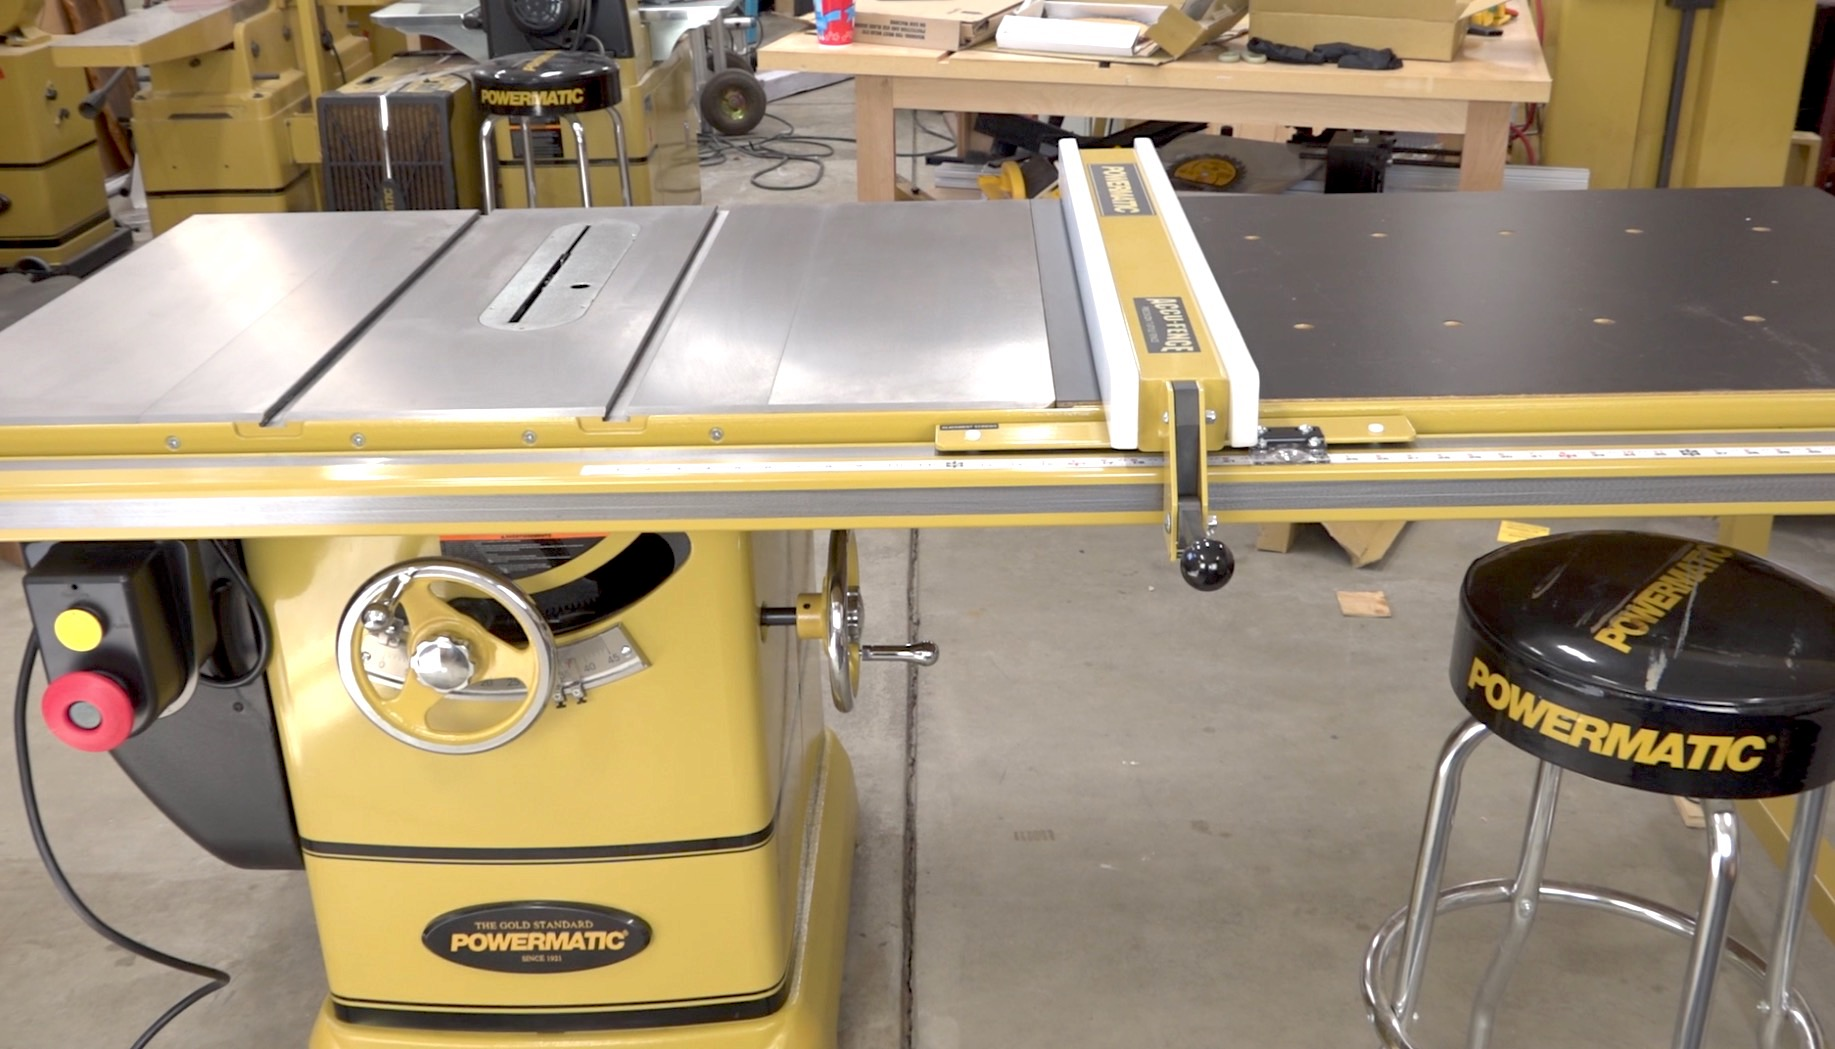 Assembly of a PM2000 Table Saw - New PM2000